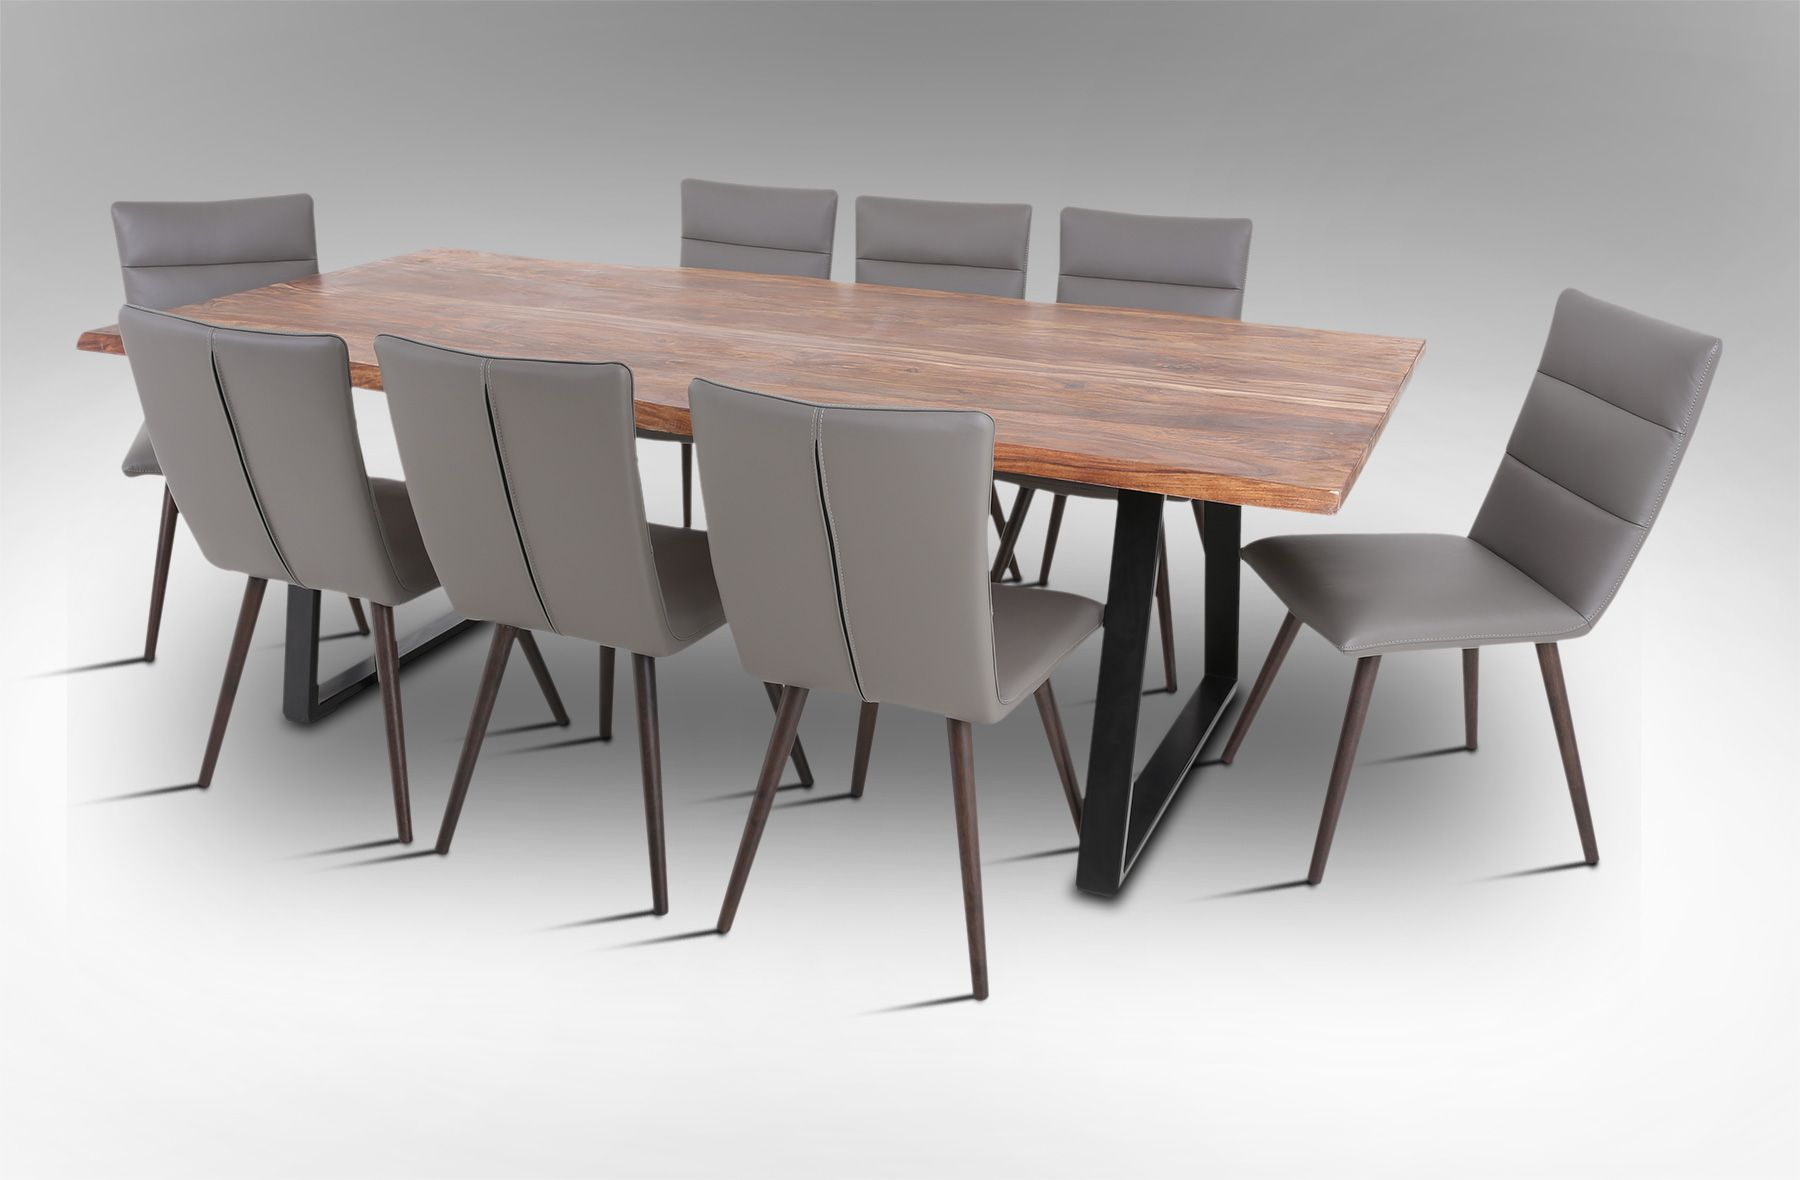 Elite Dining Room Furniture Rio 2300 Dining Table With 8 Elite Dining Chairs Image 1  St